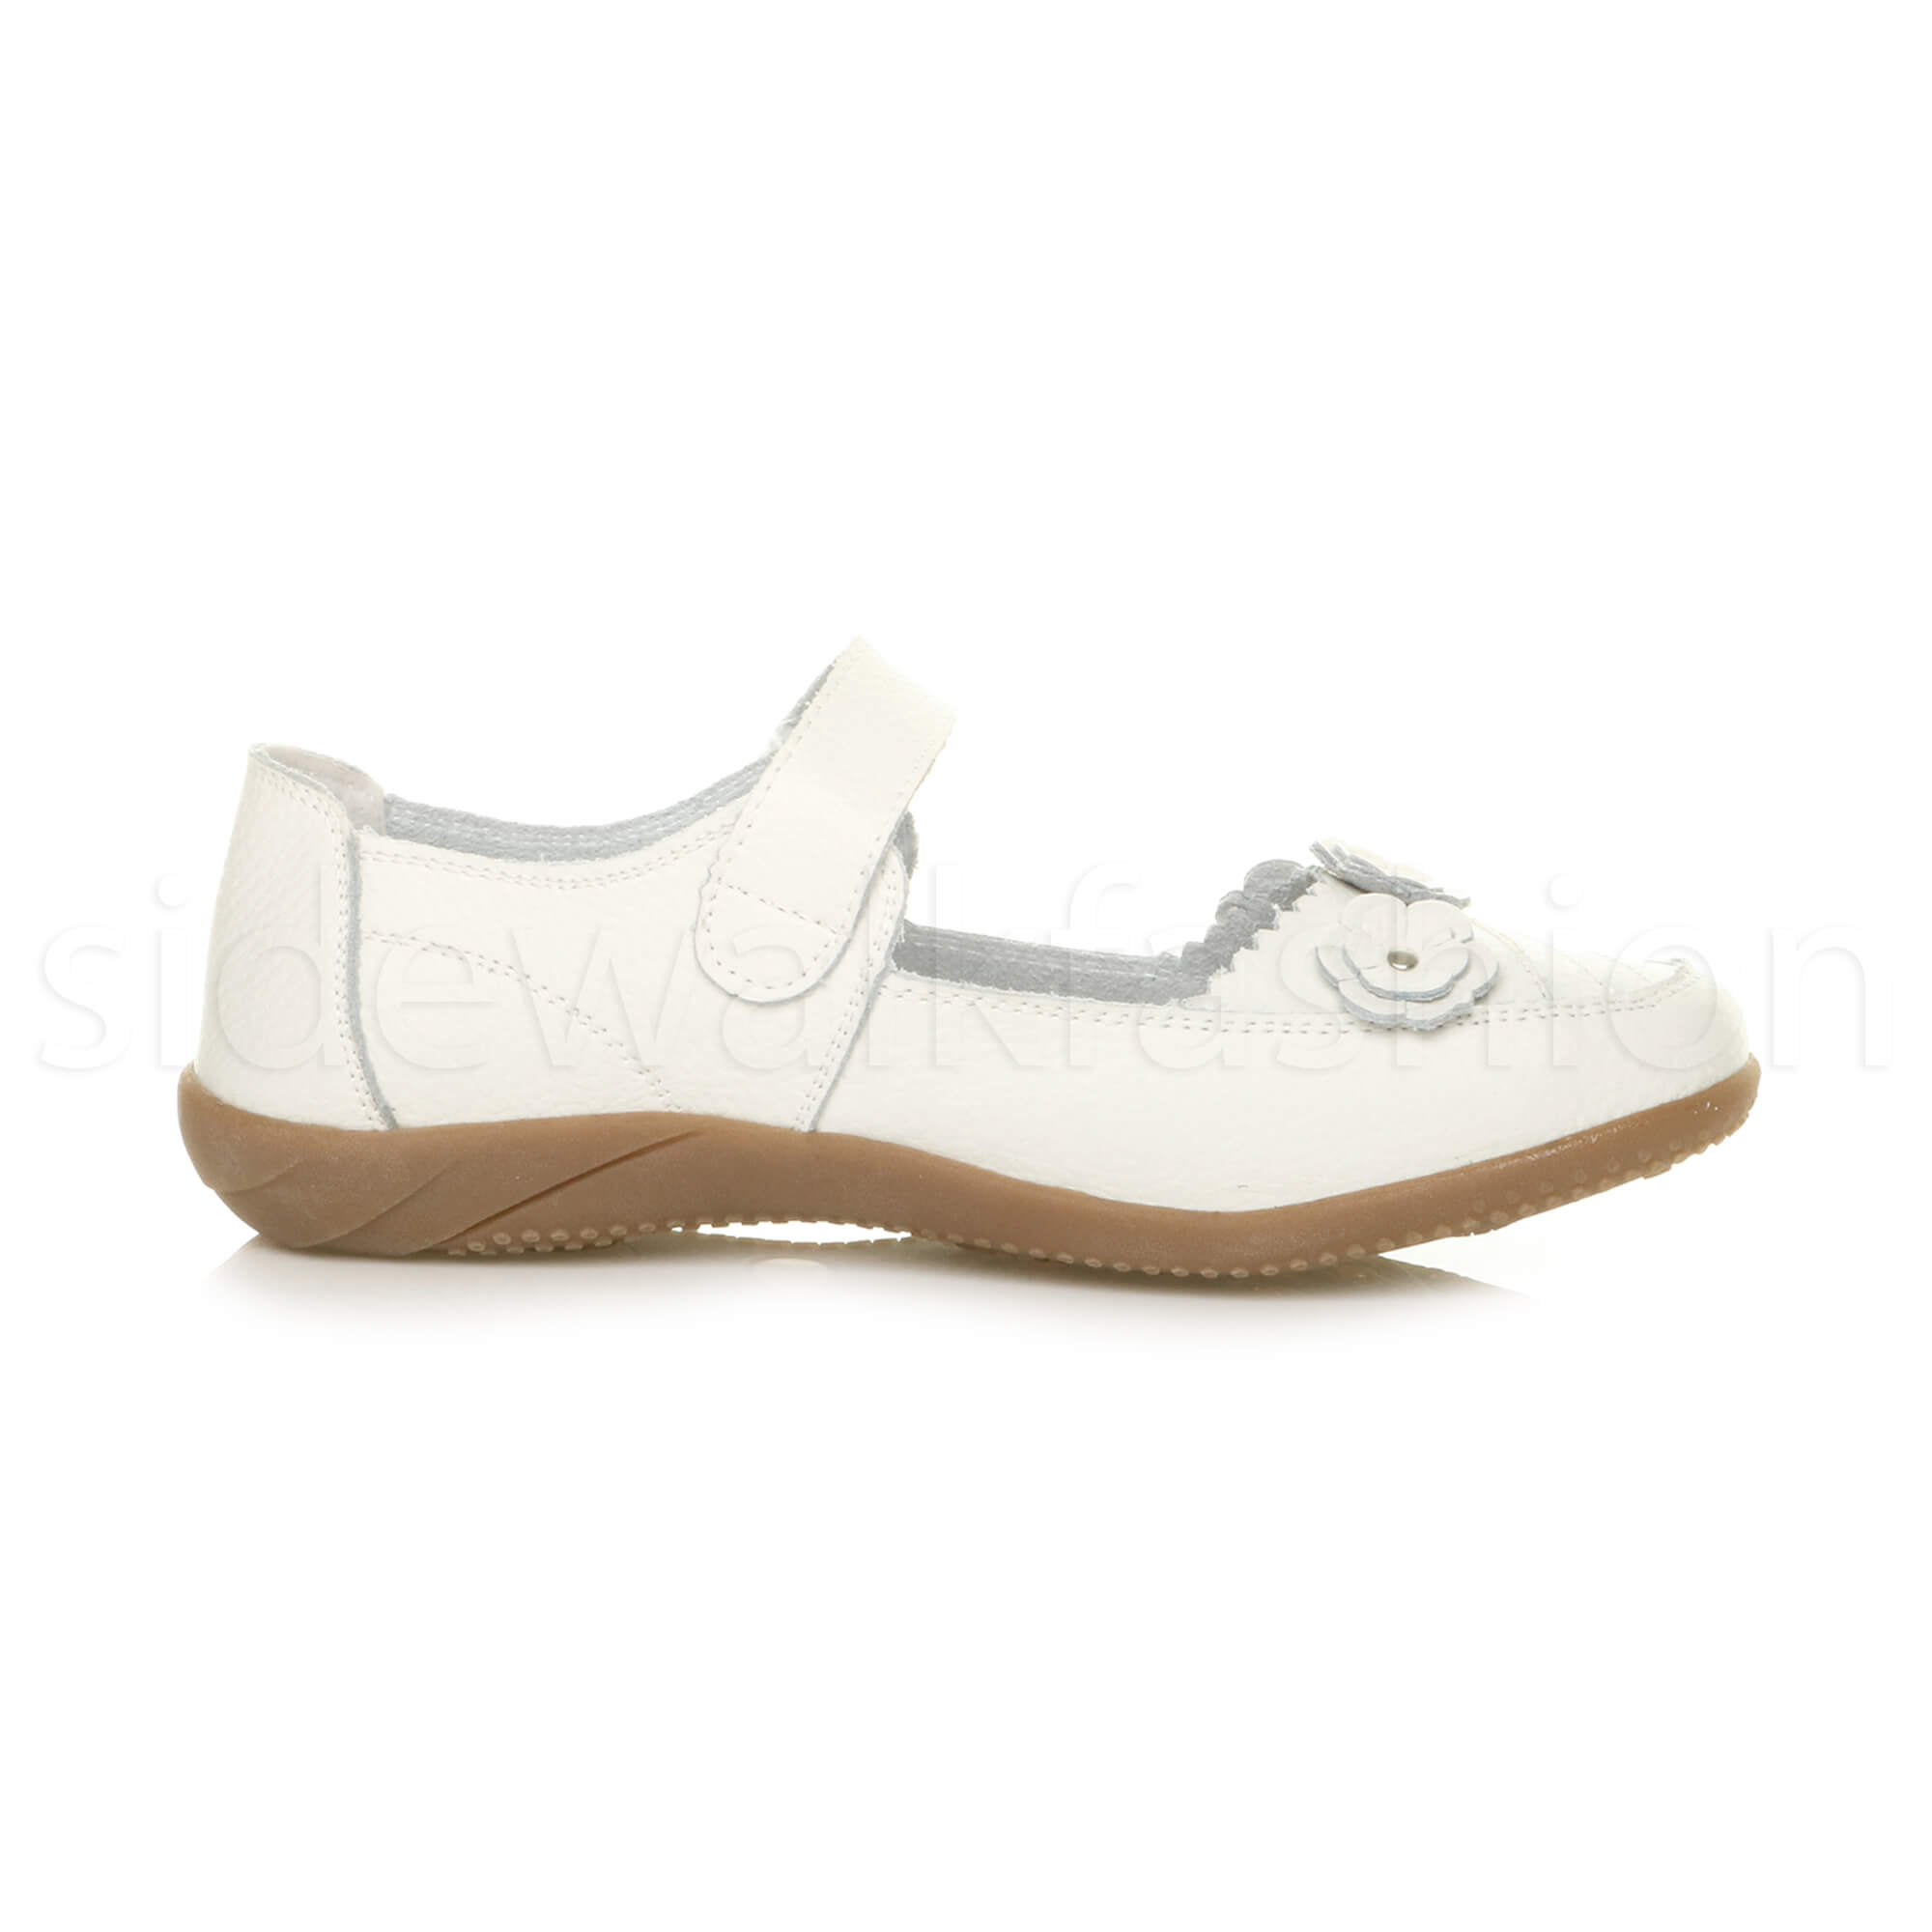 Womens-ladies-leather-comfort-walking-casual-sandals-mary-jane-strap-shoes-size thumbnail 54